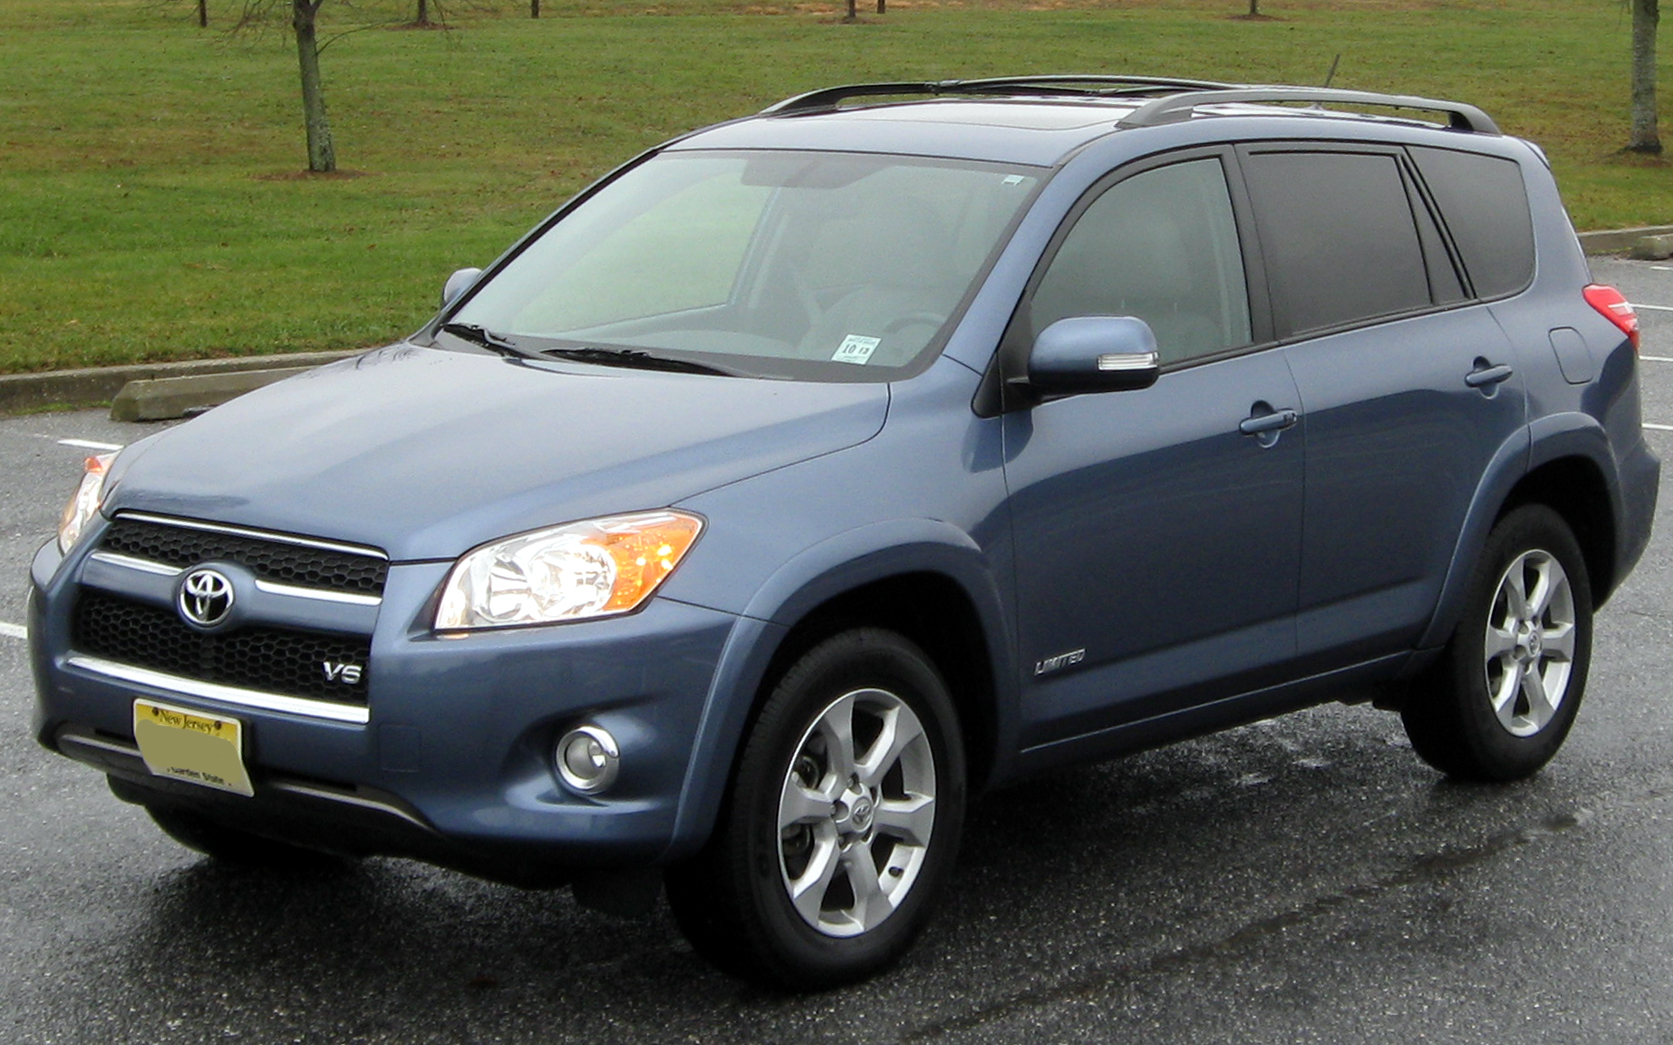 toyota rav4 wikipedia. Black Bedroom Furniture Sets. Home Design Ideas